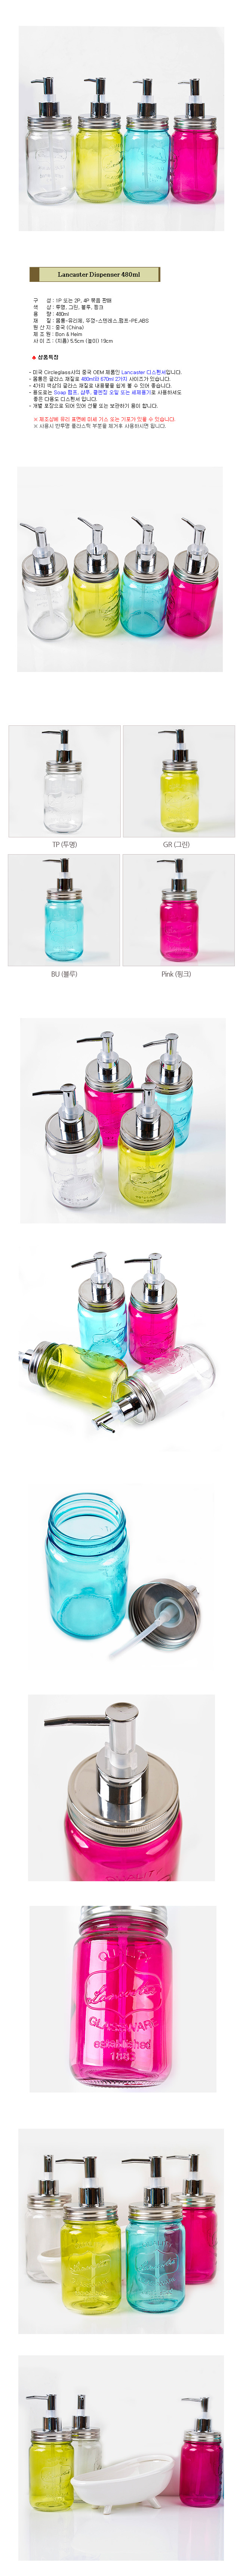 ColorDispenser480ml.jpg